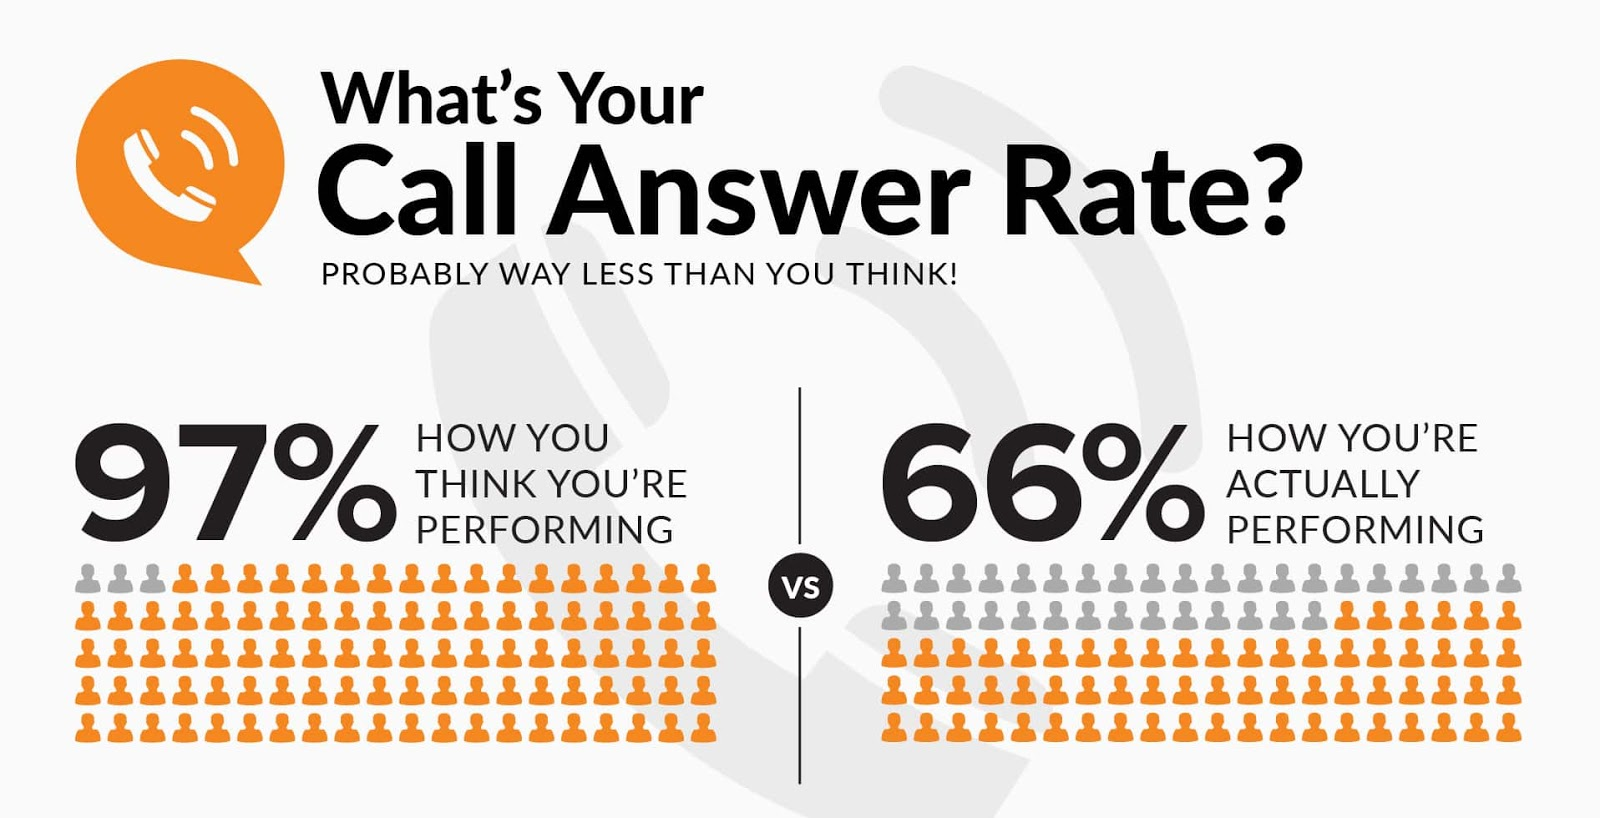 Home services companies think they are answering 97% of their phone calls, but their phone call answer rates are lower, at about 66%